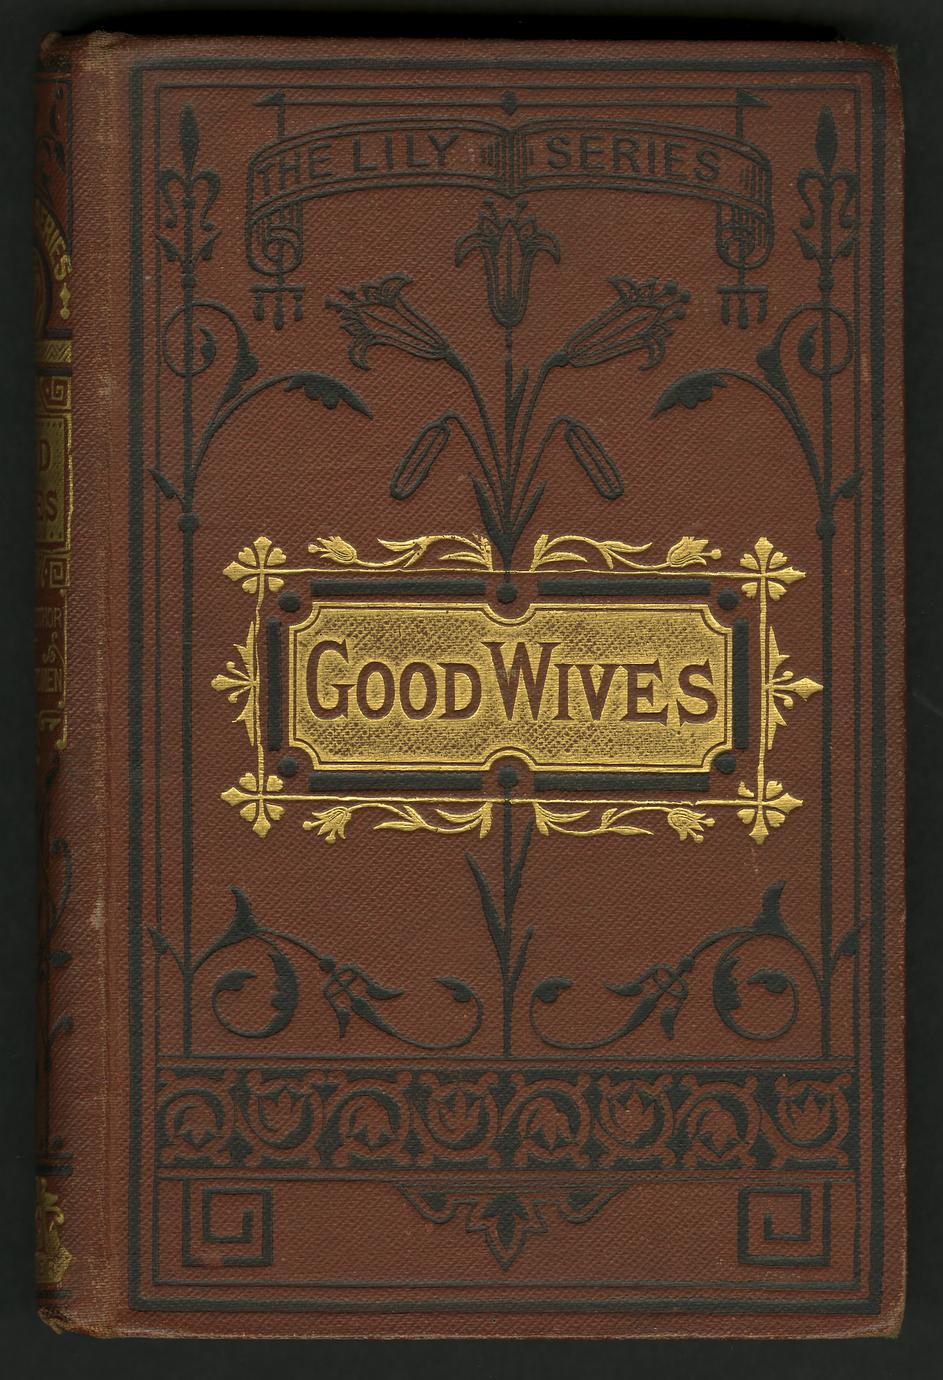 Good wives : a story for girls (1 of 5)